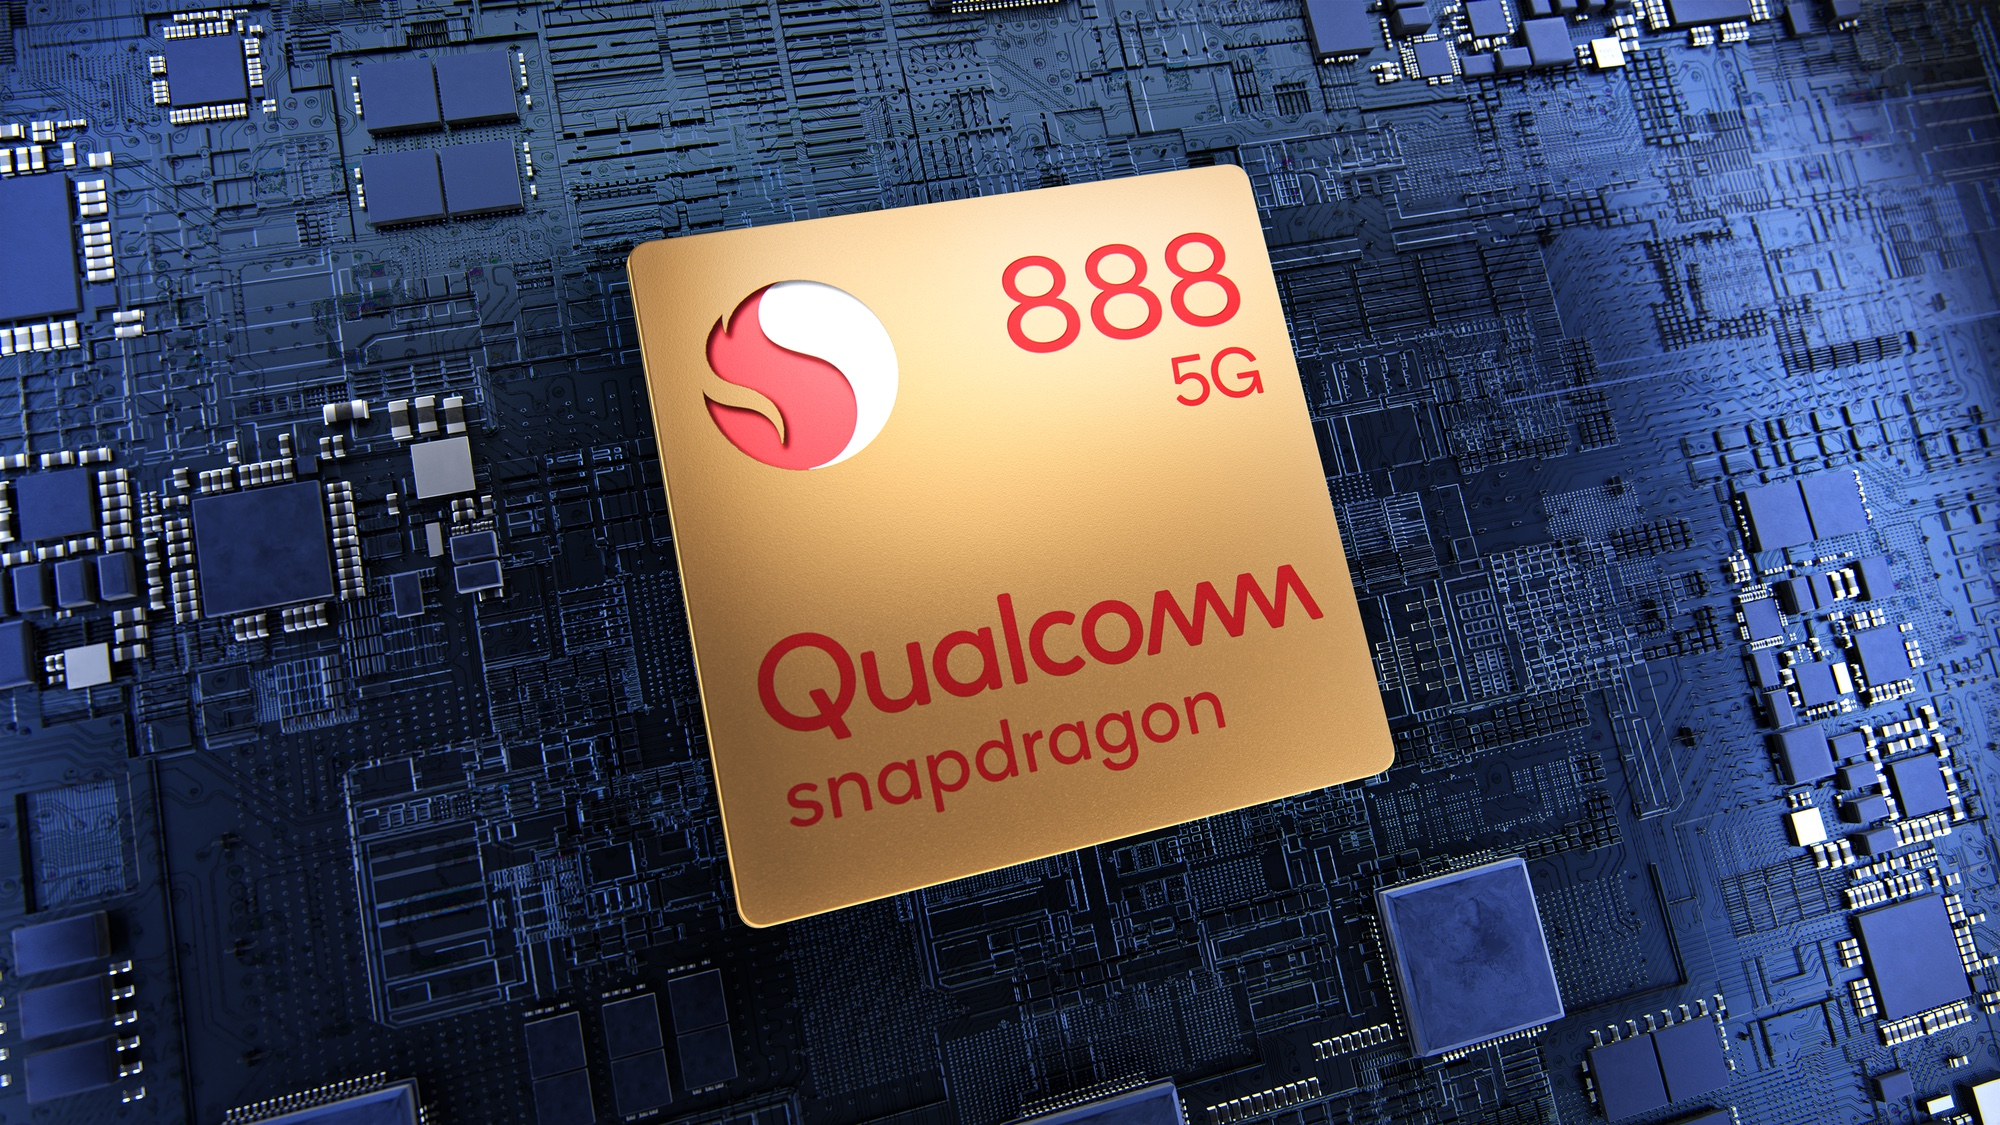 Snapdragon 888 features